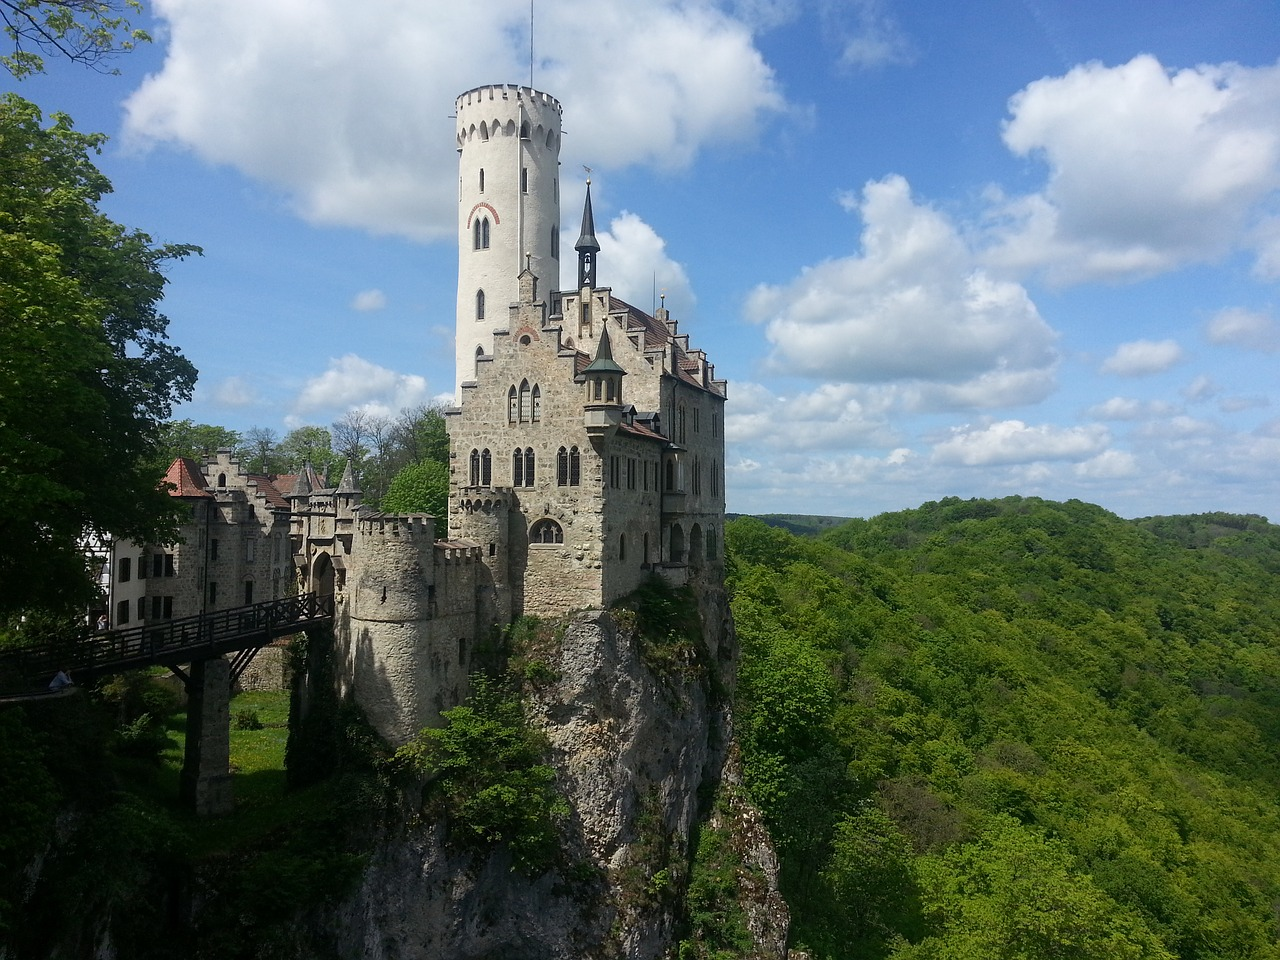 Lichtenstein Castle, Castles in Germany